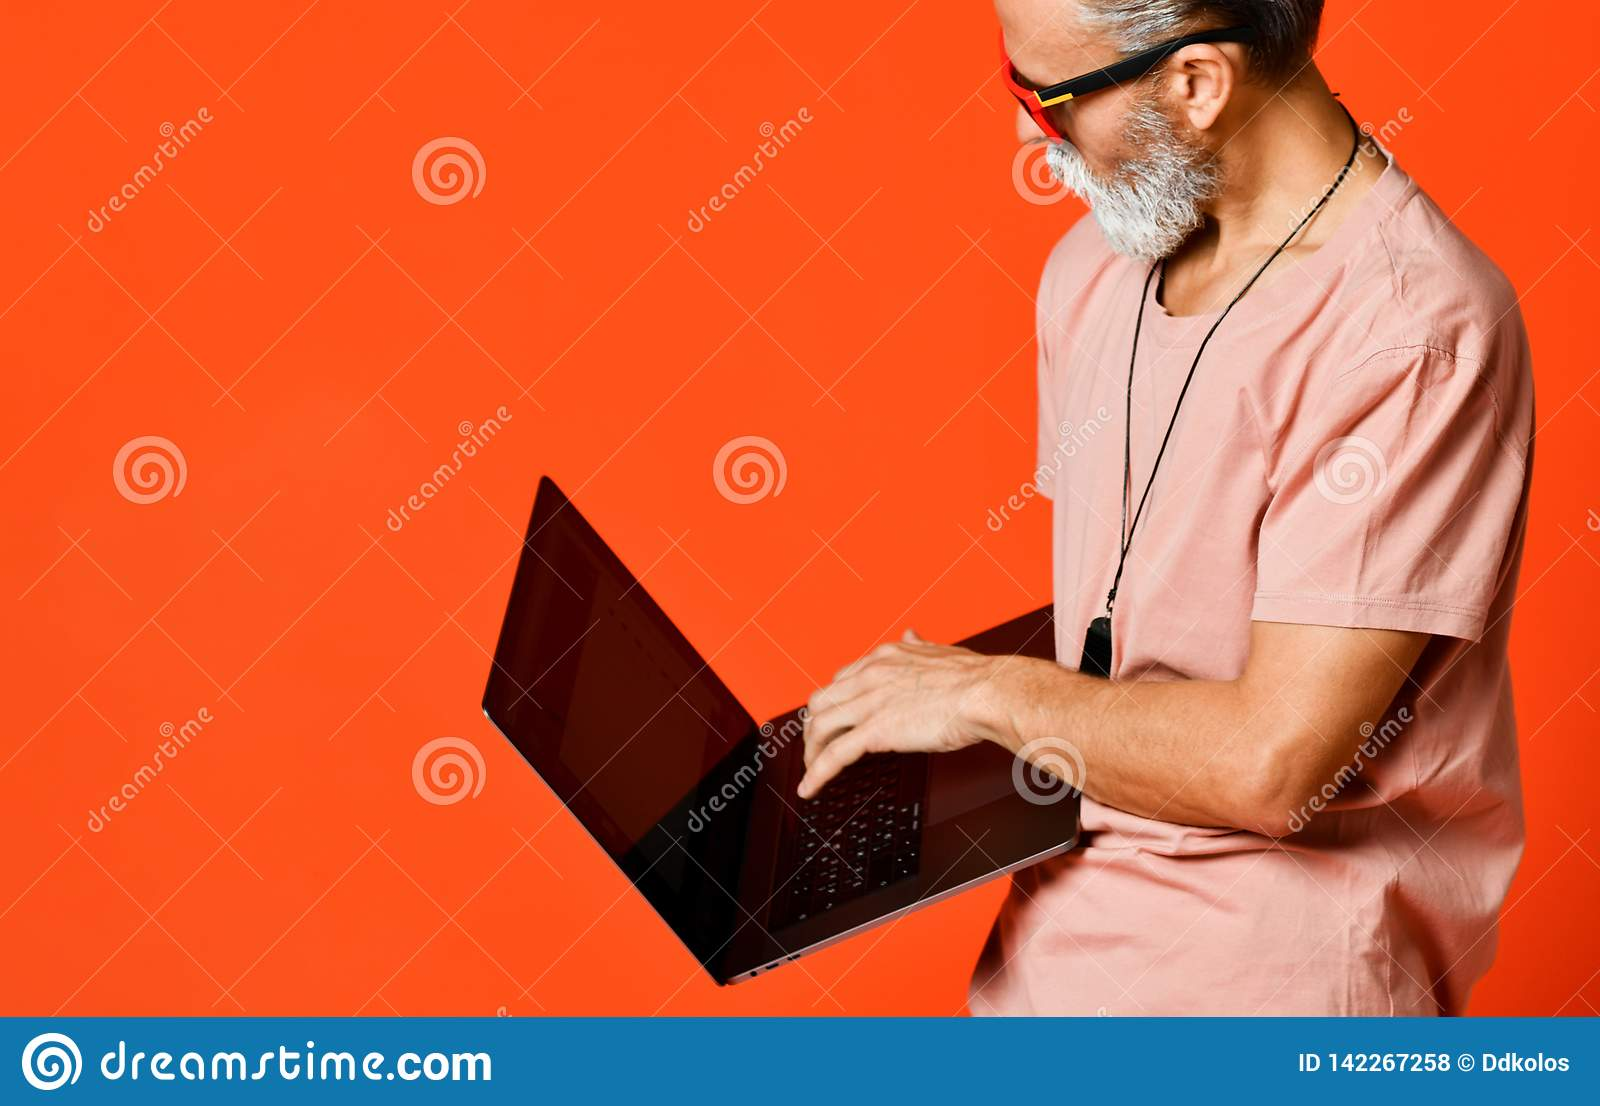 Happy portrait of trendy pensioner enjoying the use of new laptop